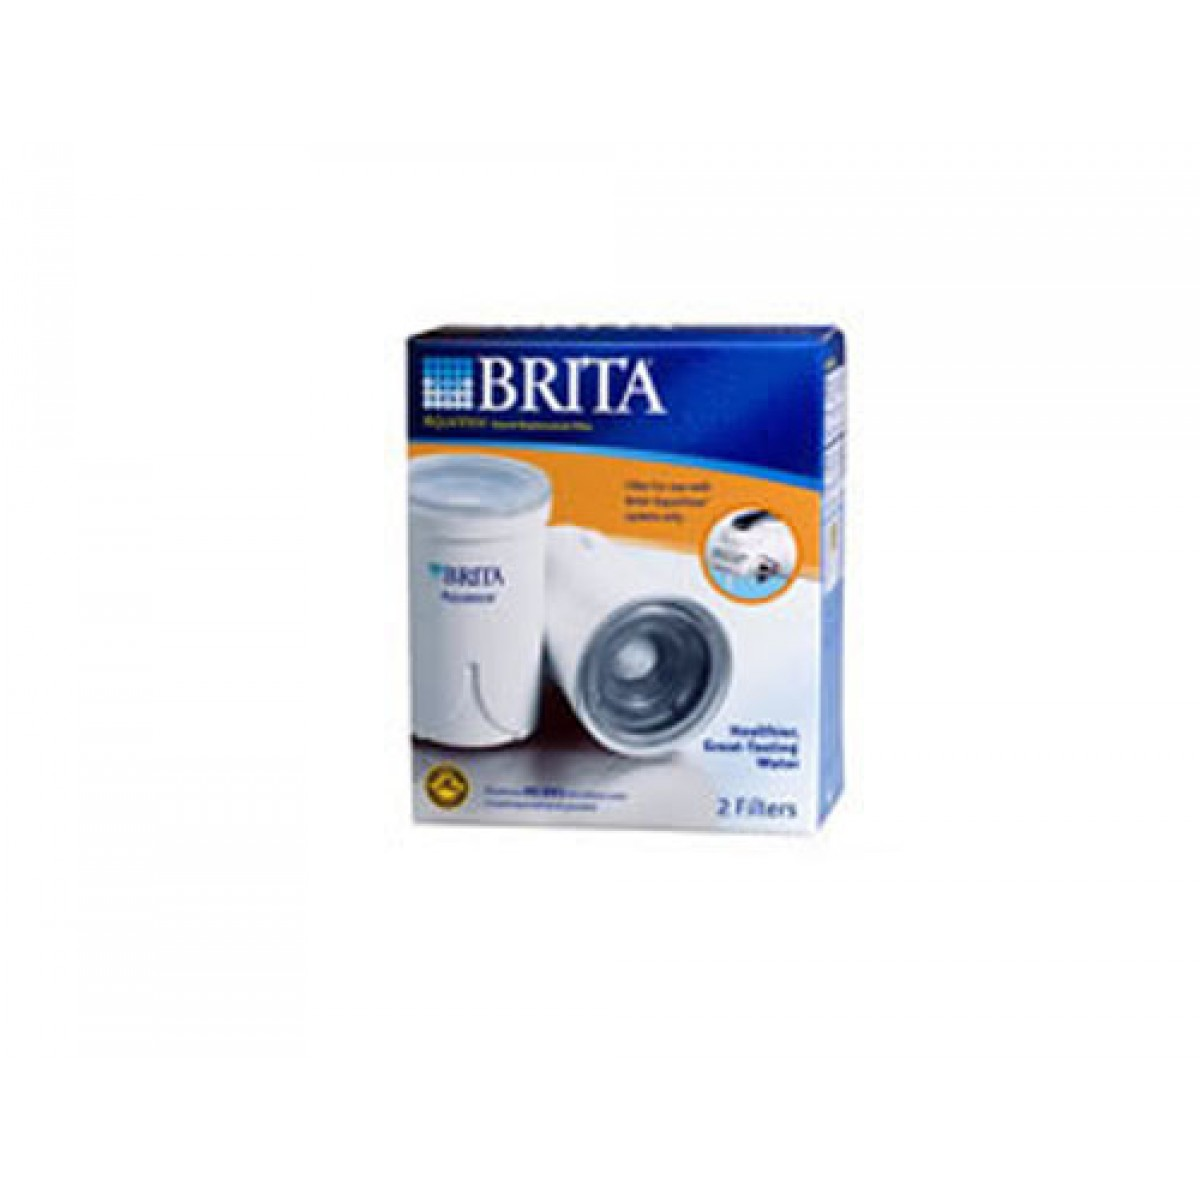 Brita AquaView AVFR-200 42646 Faucet Filter Replacement Cartridge (2 ...